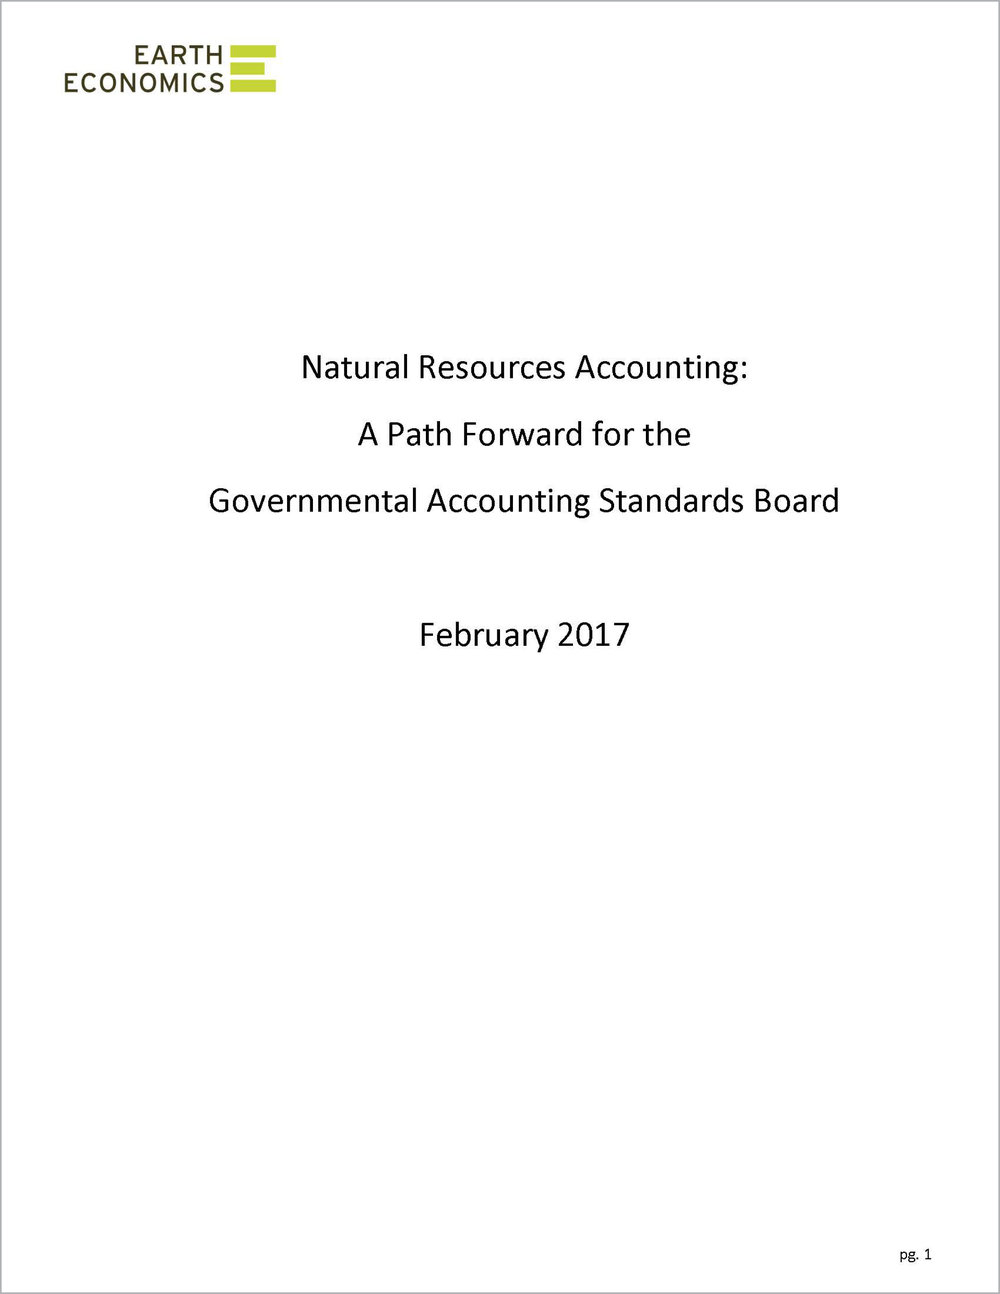 Cover_NaturalResourcesAccounting_EarthEconomics_Feb2017.jpg